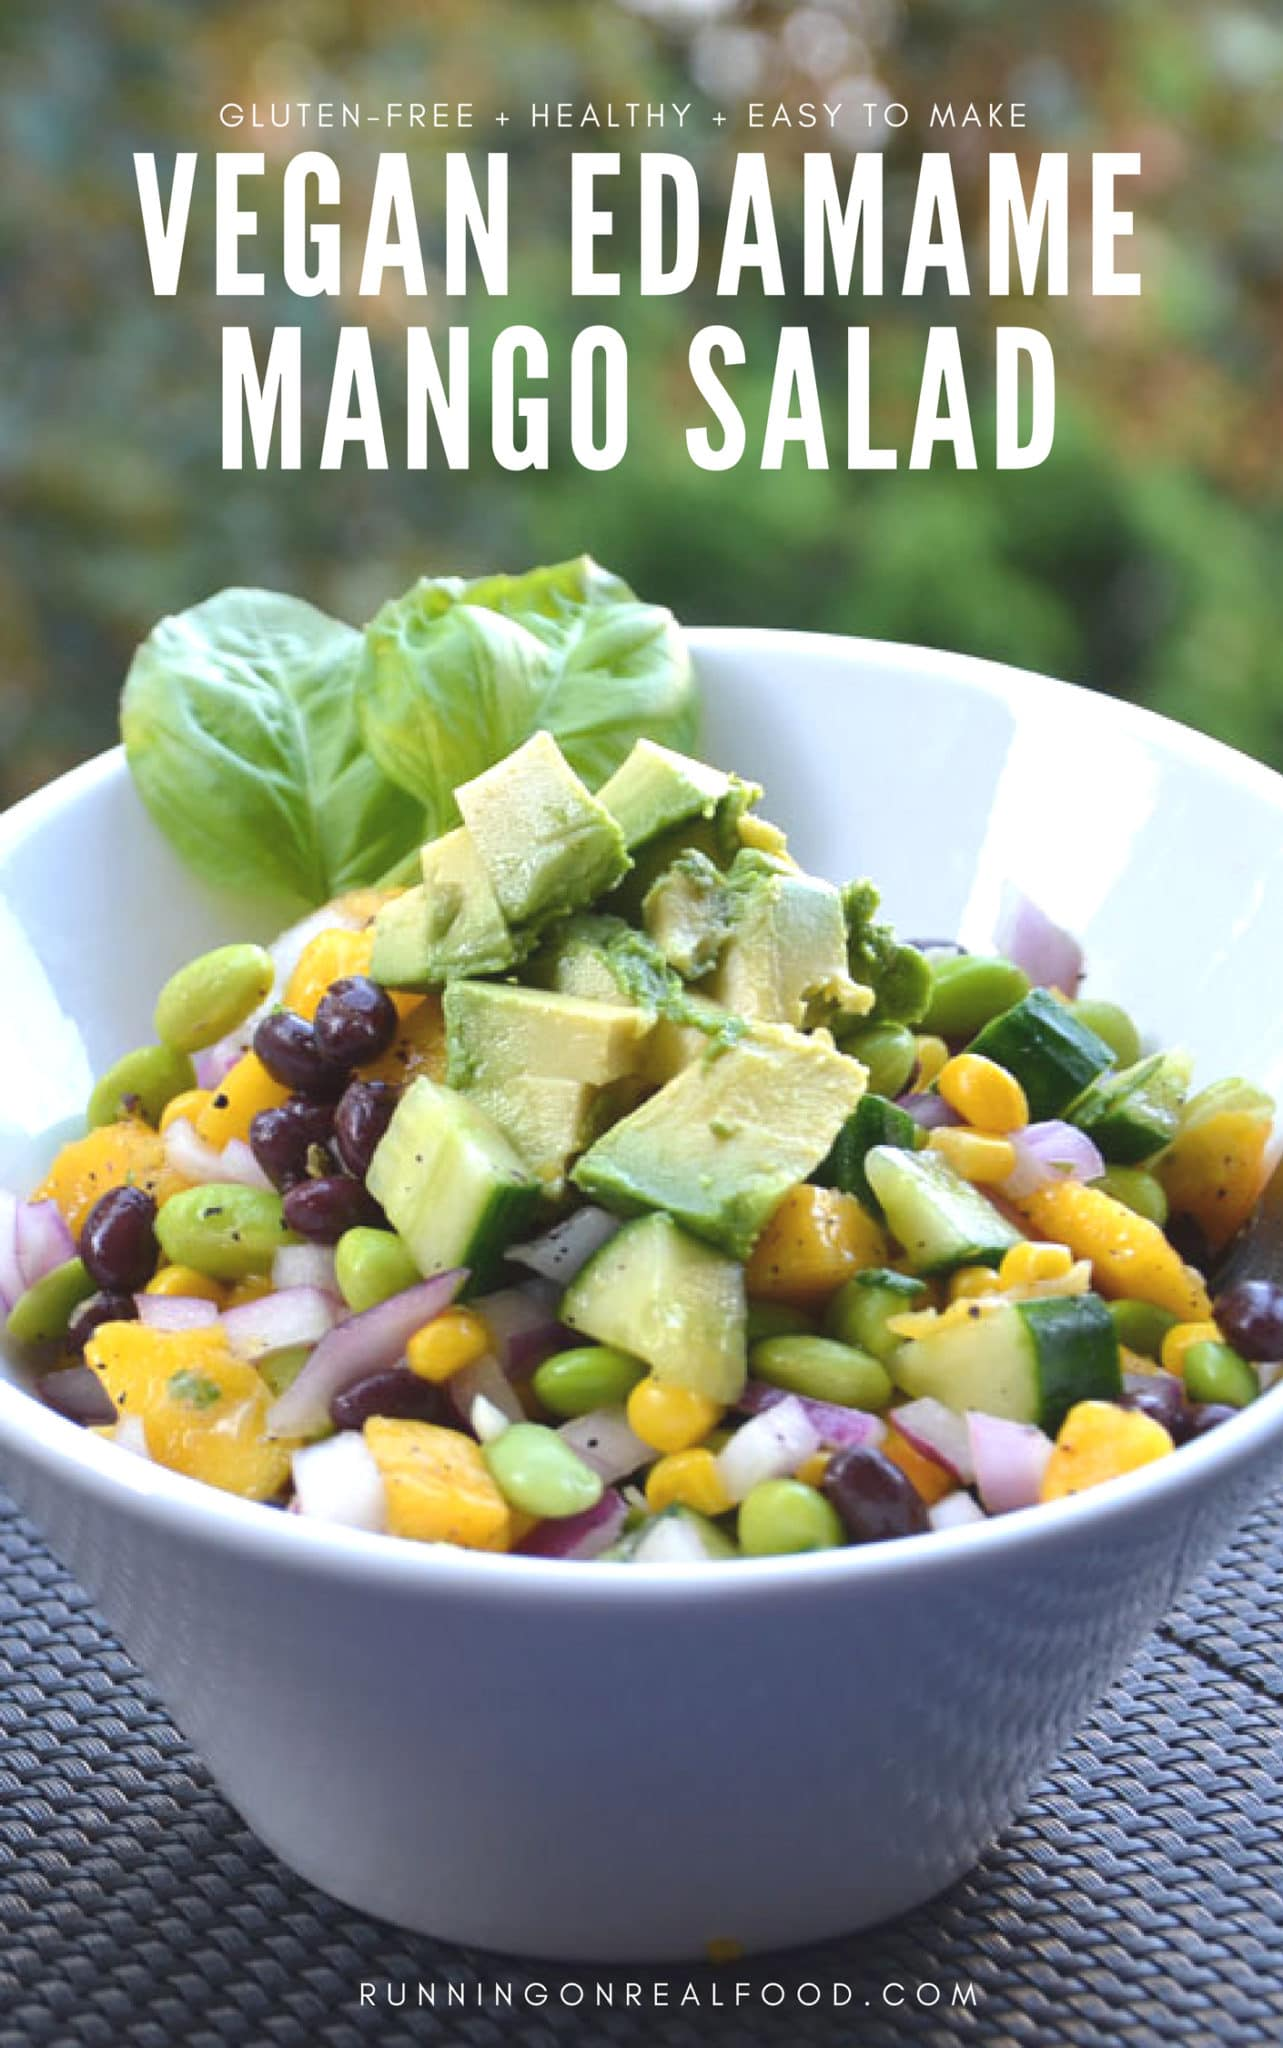 This high-protein edamame mango salad with basil vinaigrette is full of flavour, easy to make, vegan, gluten-free and can be oil-free. Perfect for summer BBQ's and potlucks but delicious year-round too.